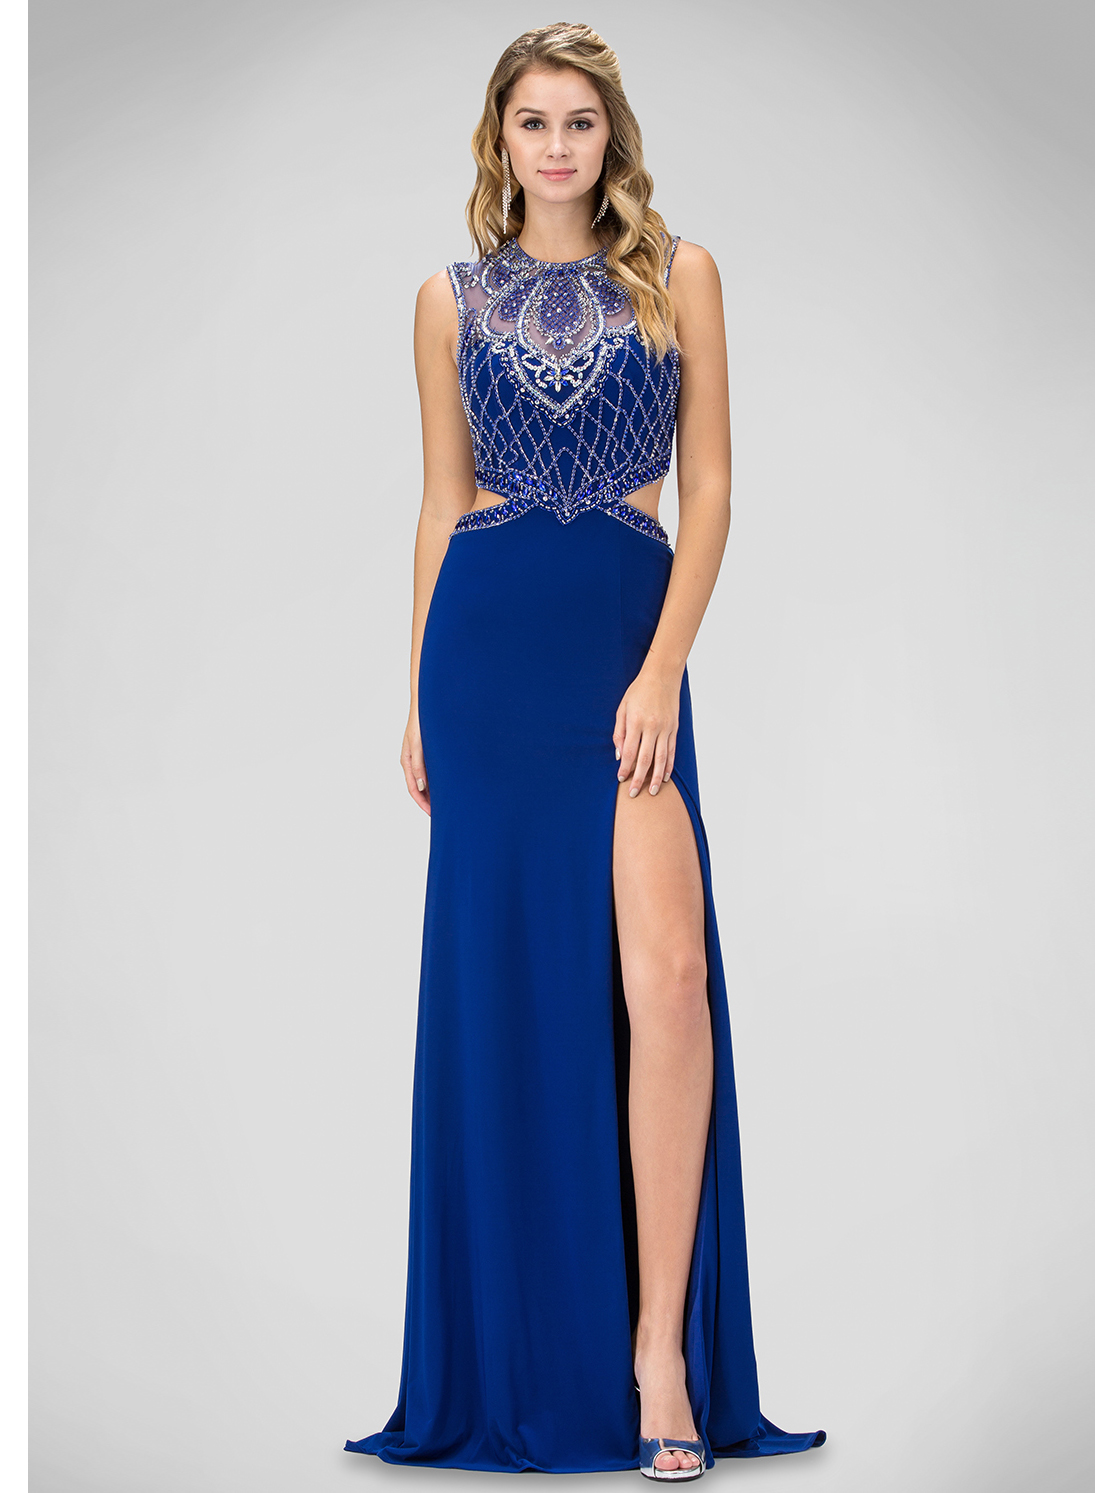 Beaded Bodice Prom Evening Dress with Side Cutout | Sung Boutique L.A.